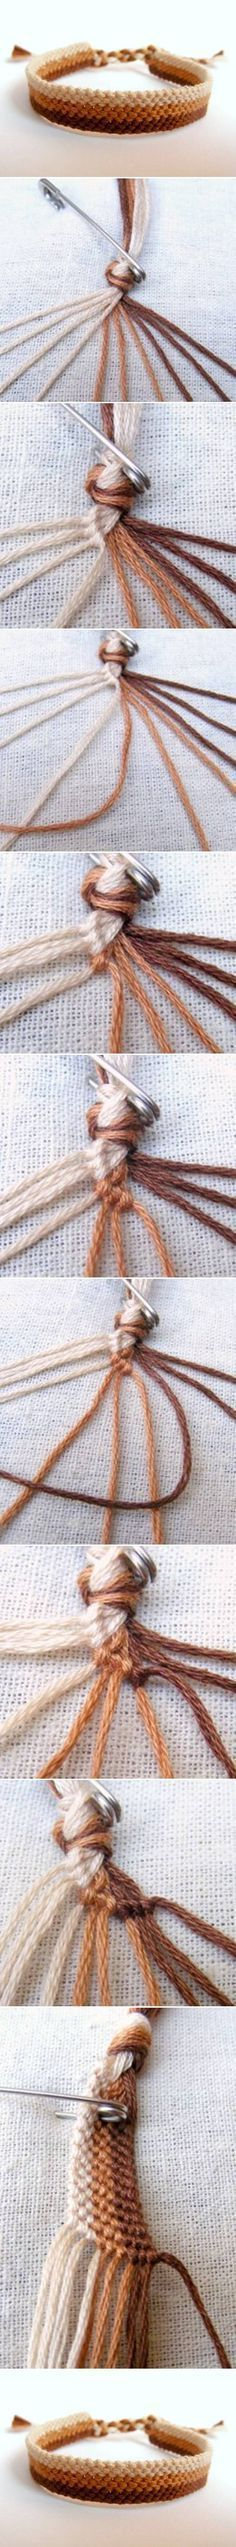 DIY Easy Weave Bracelet DIY Projects